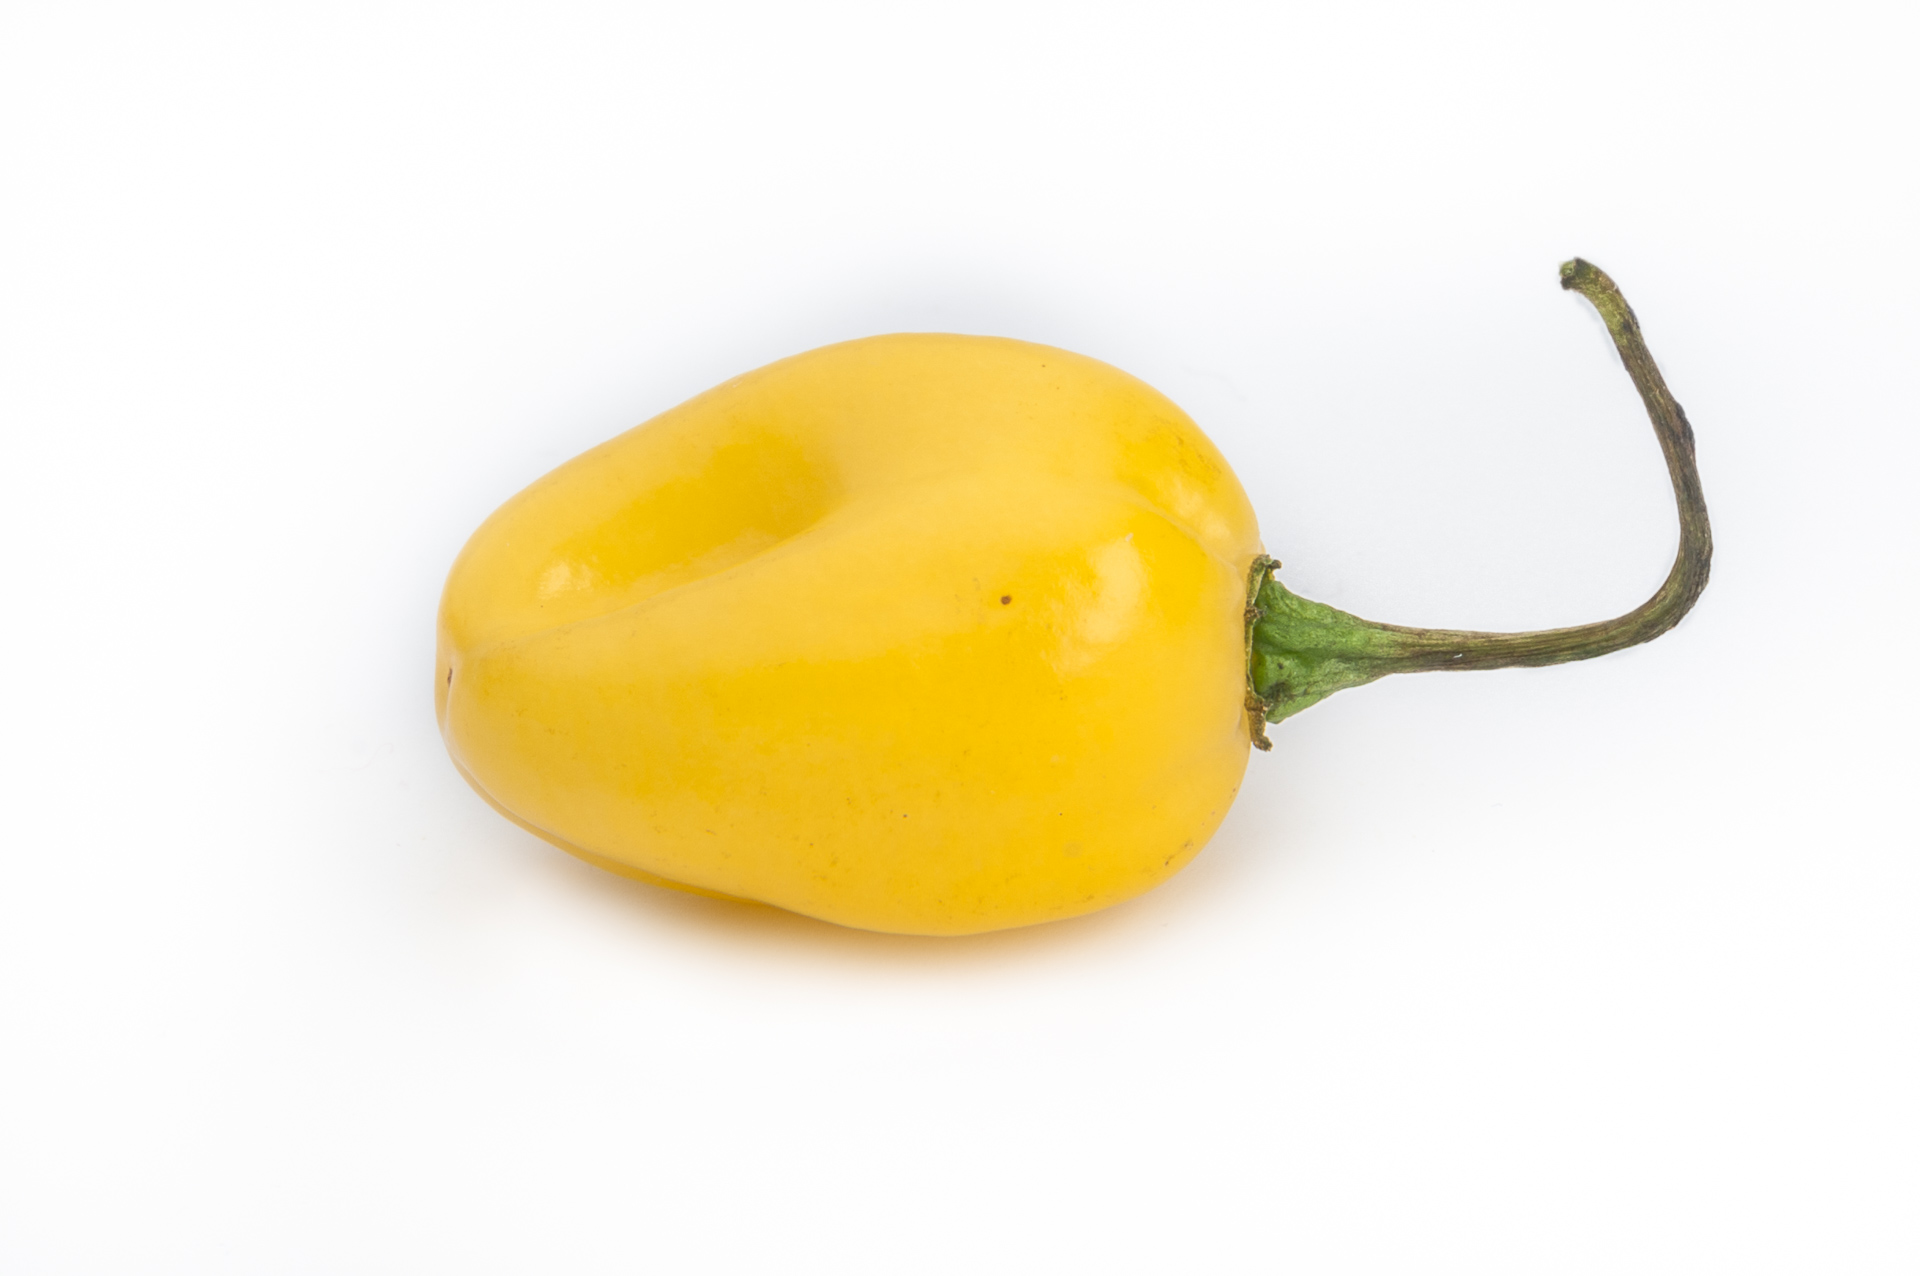 VI037534 - Capsicum annuum - Chilisorte